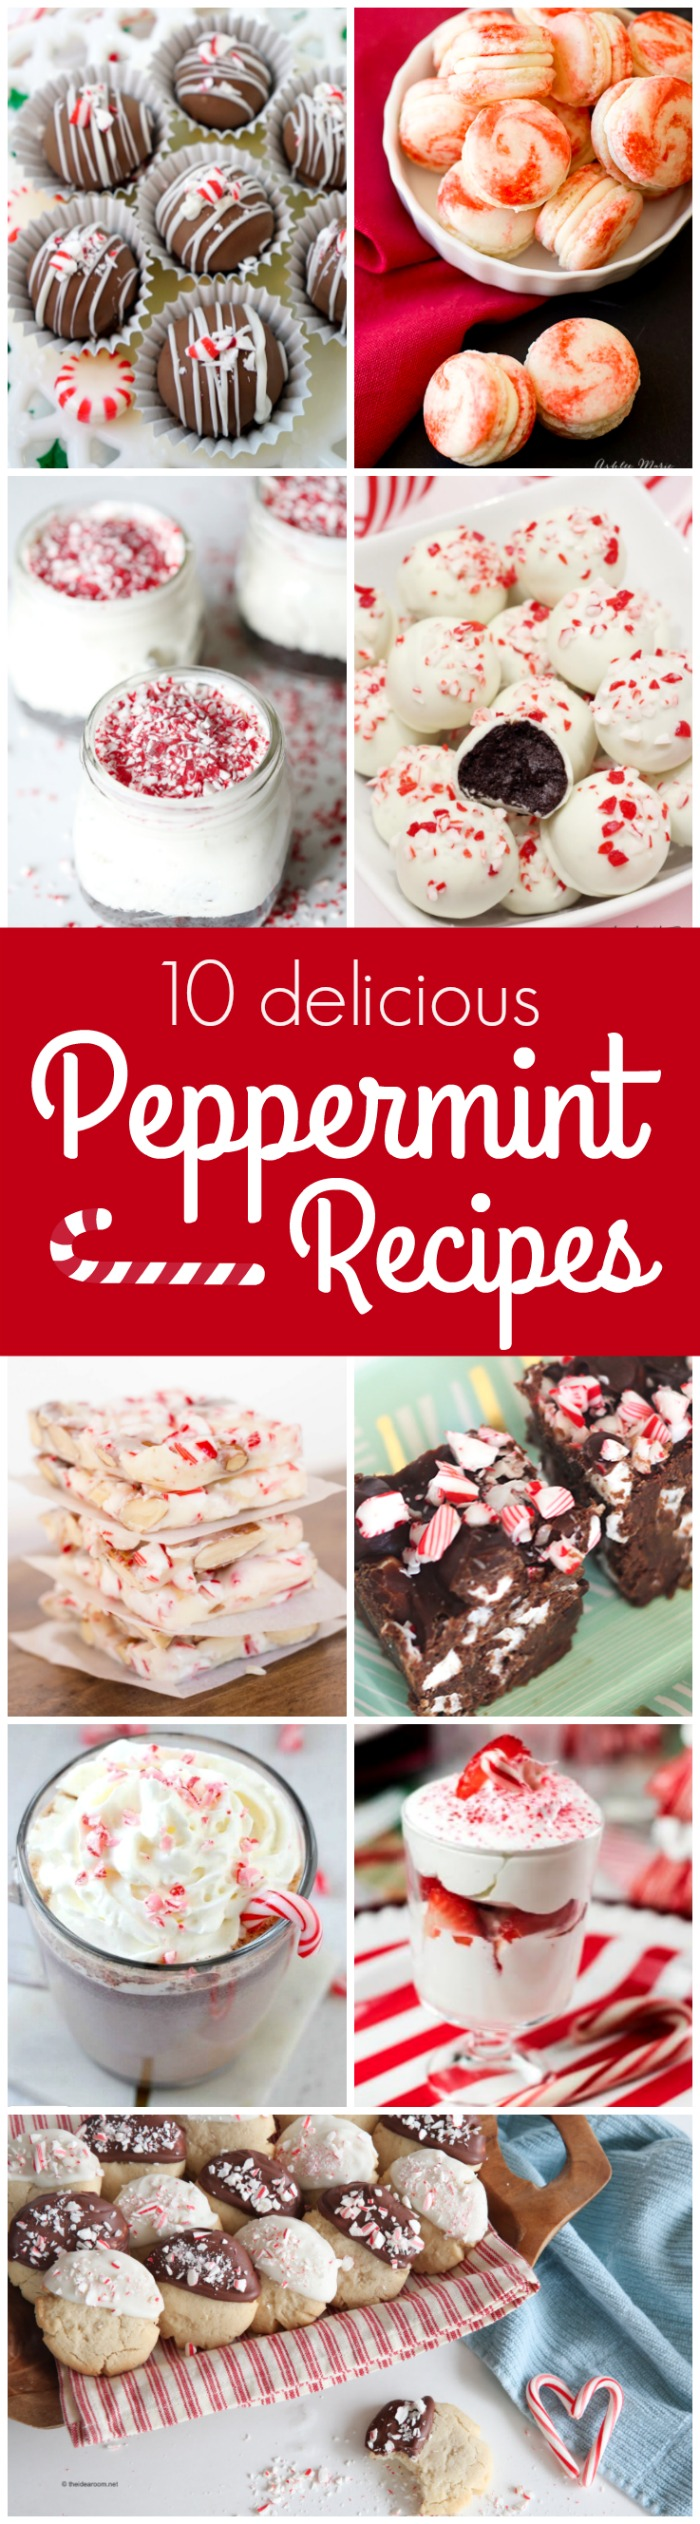 Get in the Christmas spirit with these Delicious Peppermint Recipes!